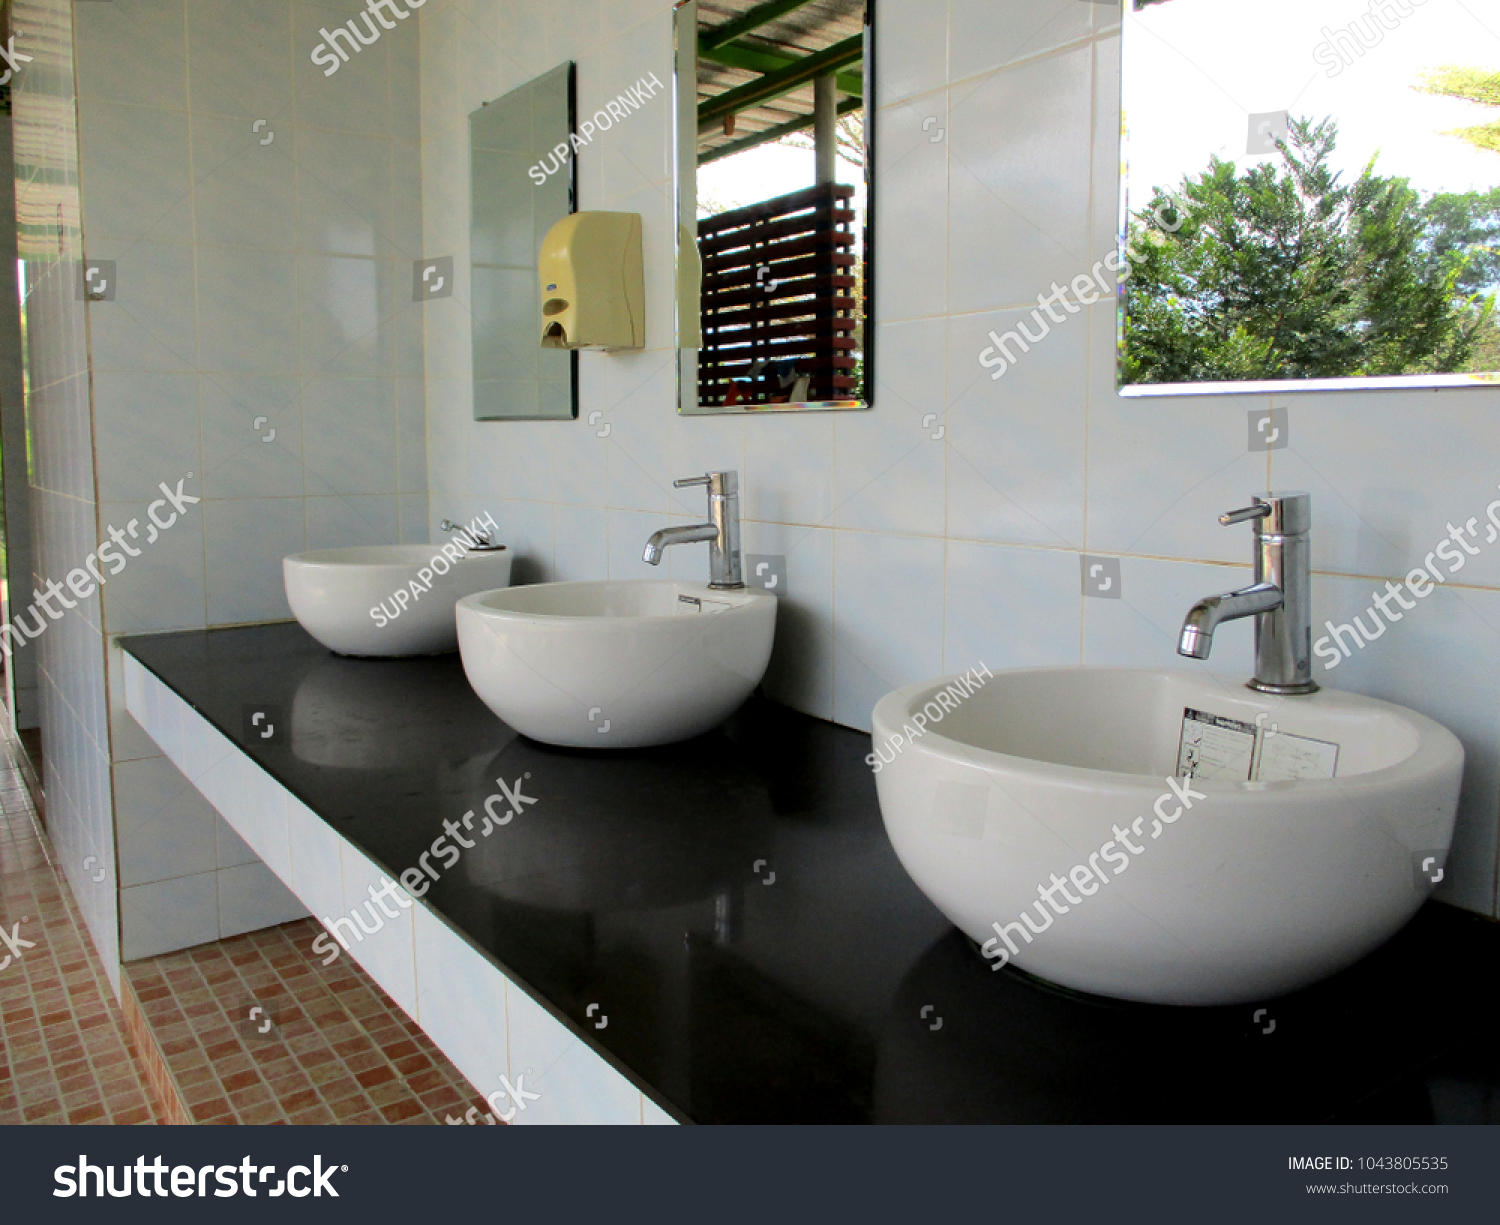 Sanitary Ware Sinks Faucets Clean Dirt Stock Photo (Edit Now ...